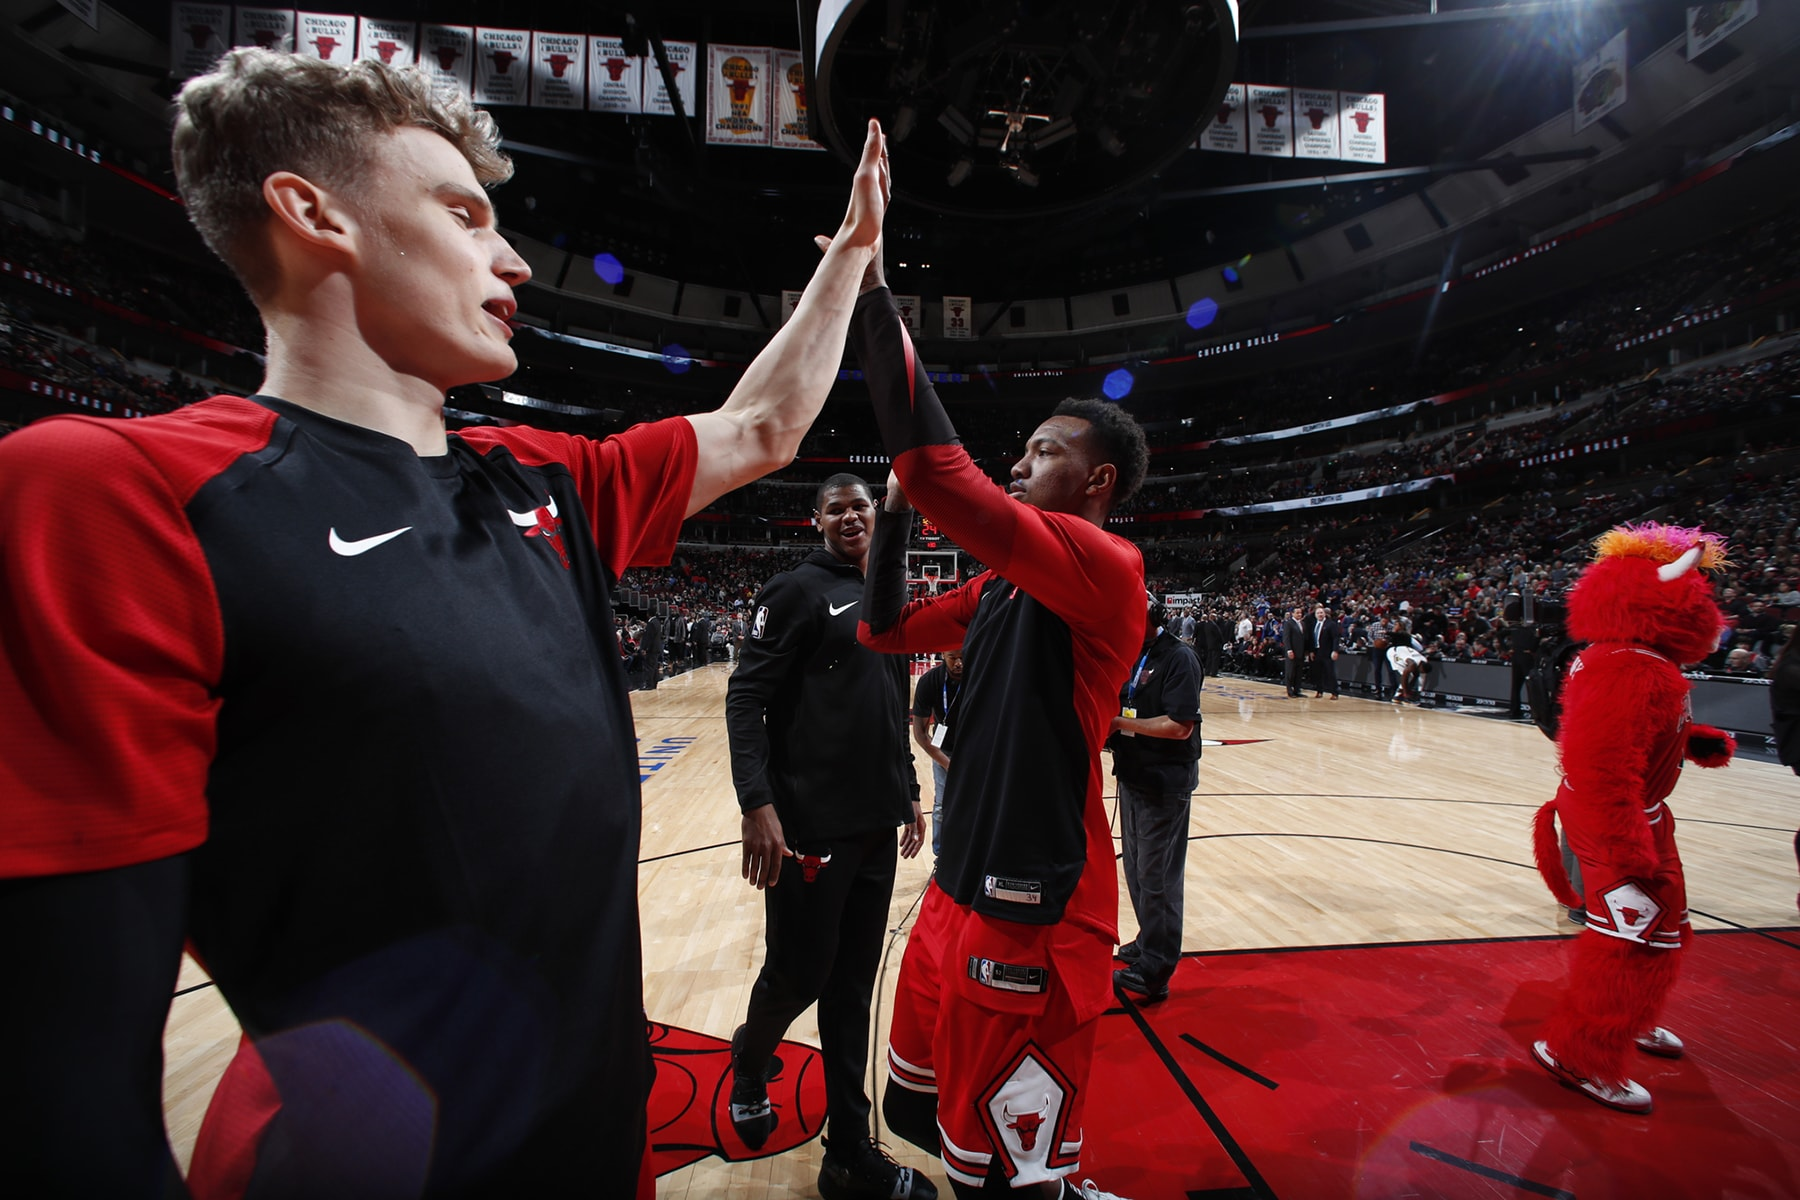 Lauri & Wendell High Five